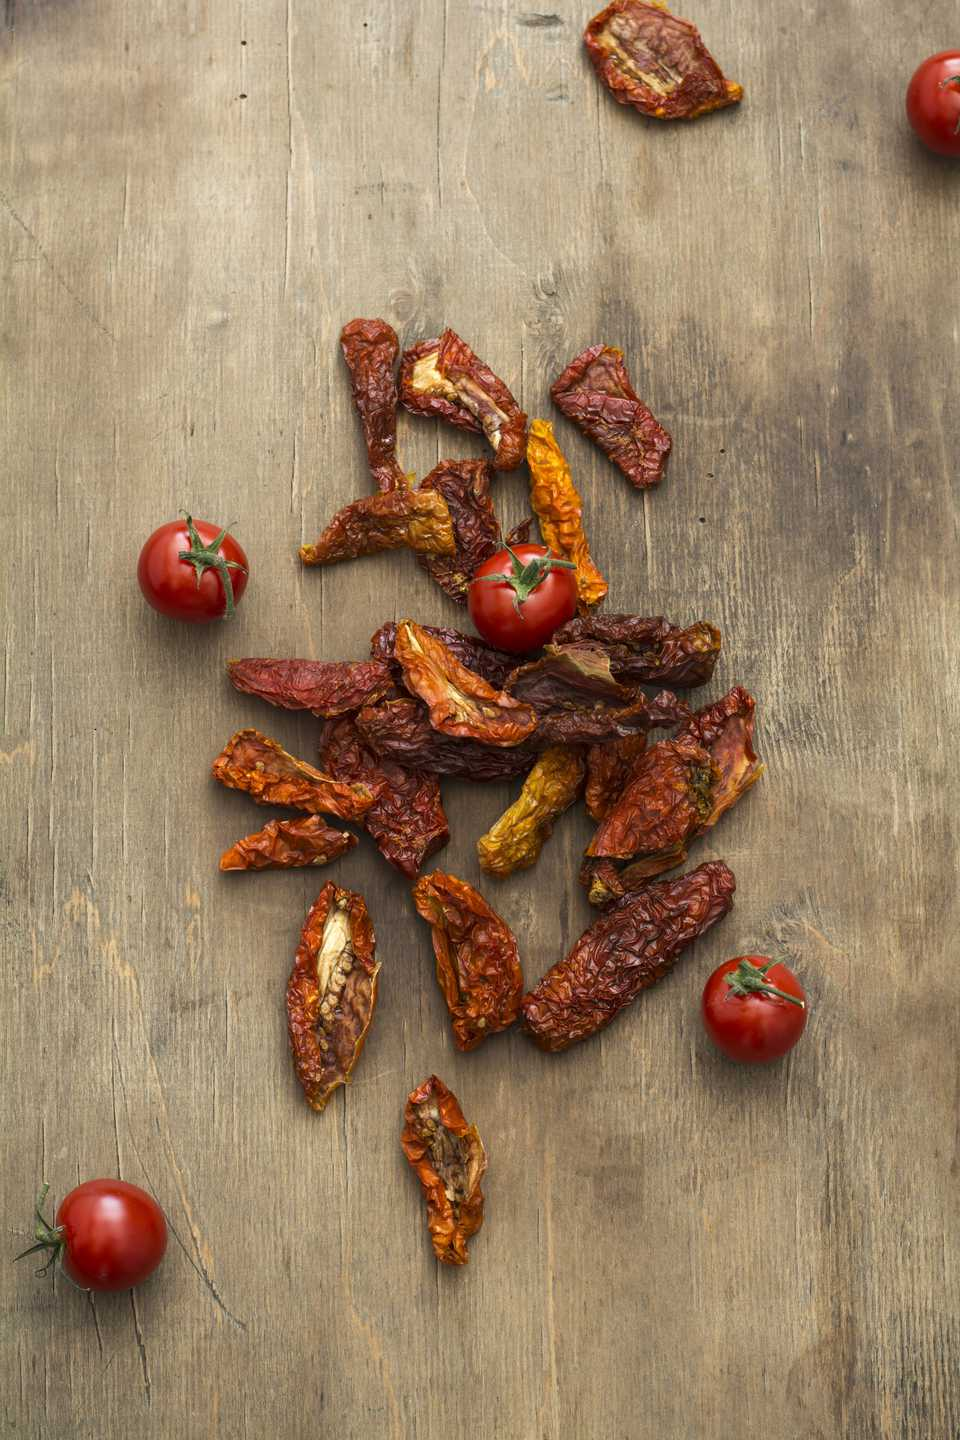 Sun dried tomatoes on wood